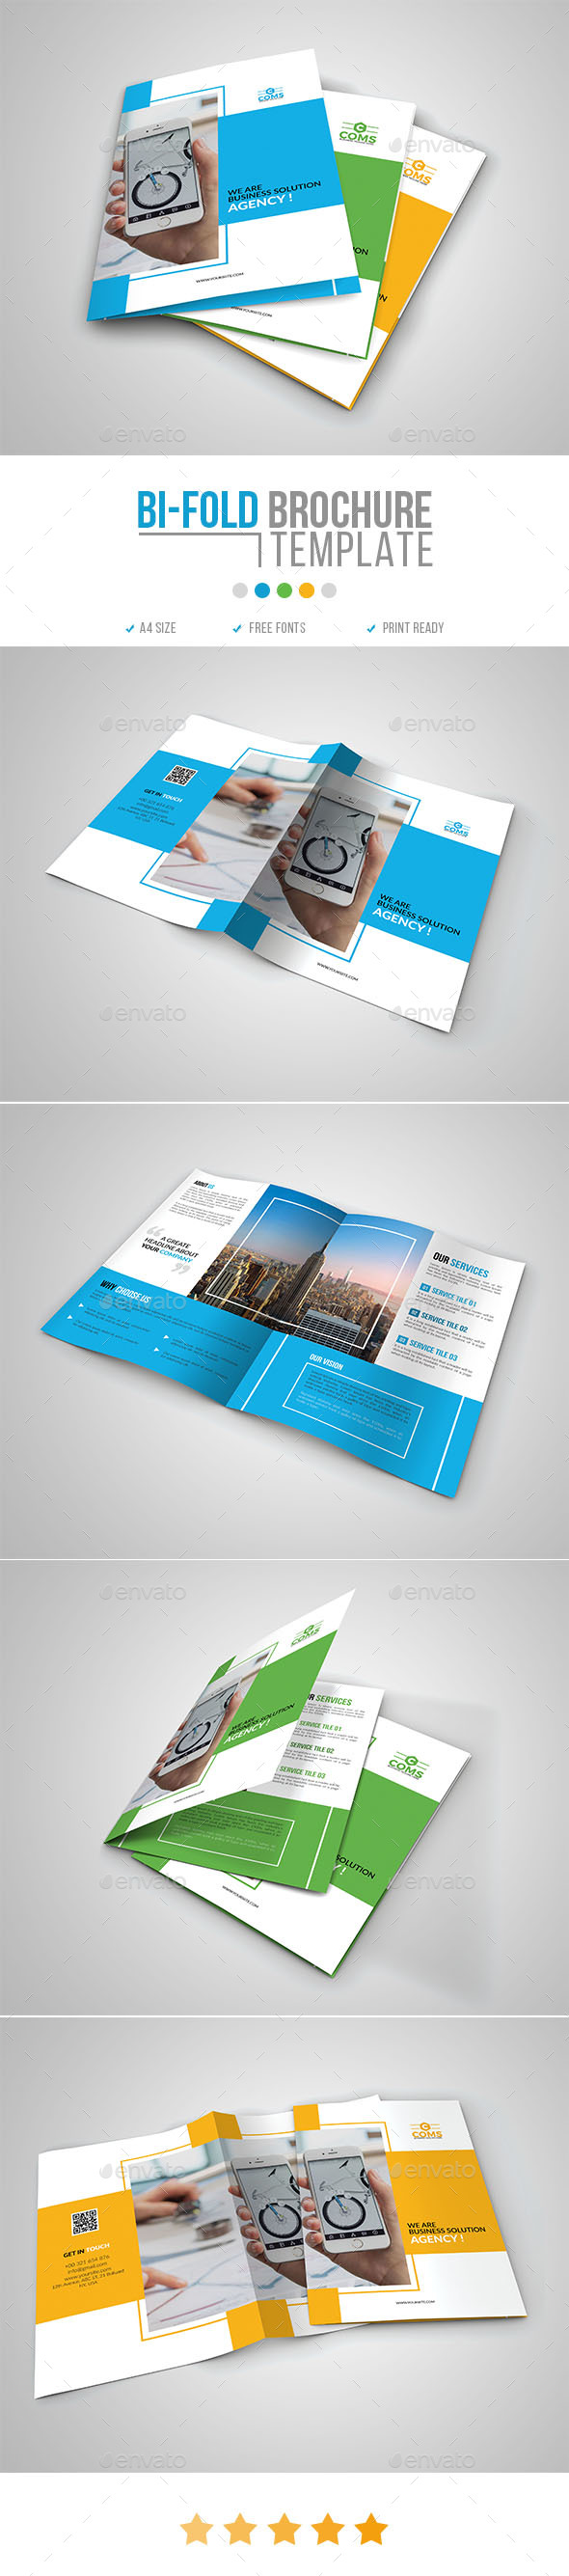 Corporate Bi-Fold Brochure Template 10 - Corporate Brochures